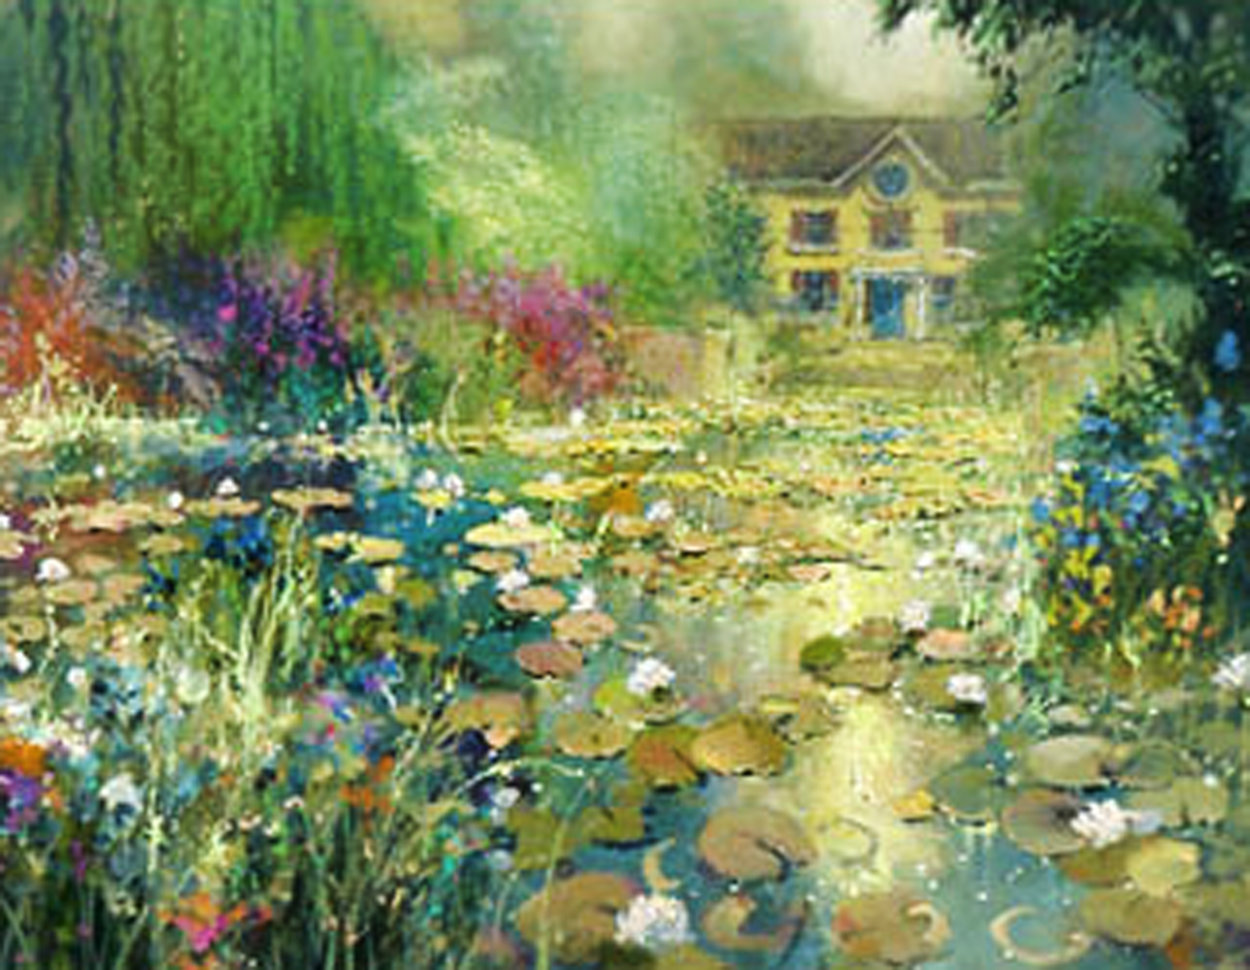 Summer's Bloom Embellished 2006 Limited Edition Print by James Coleman